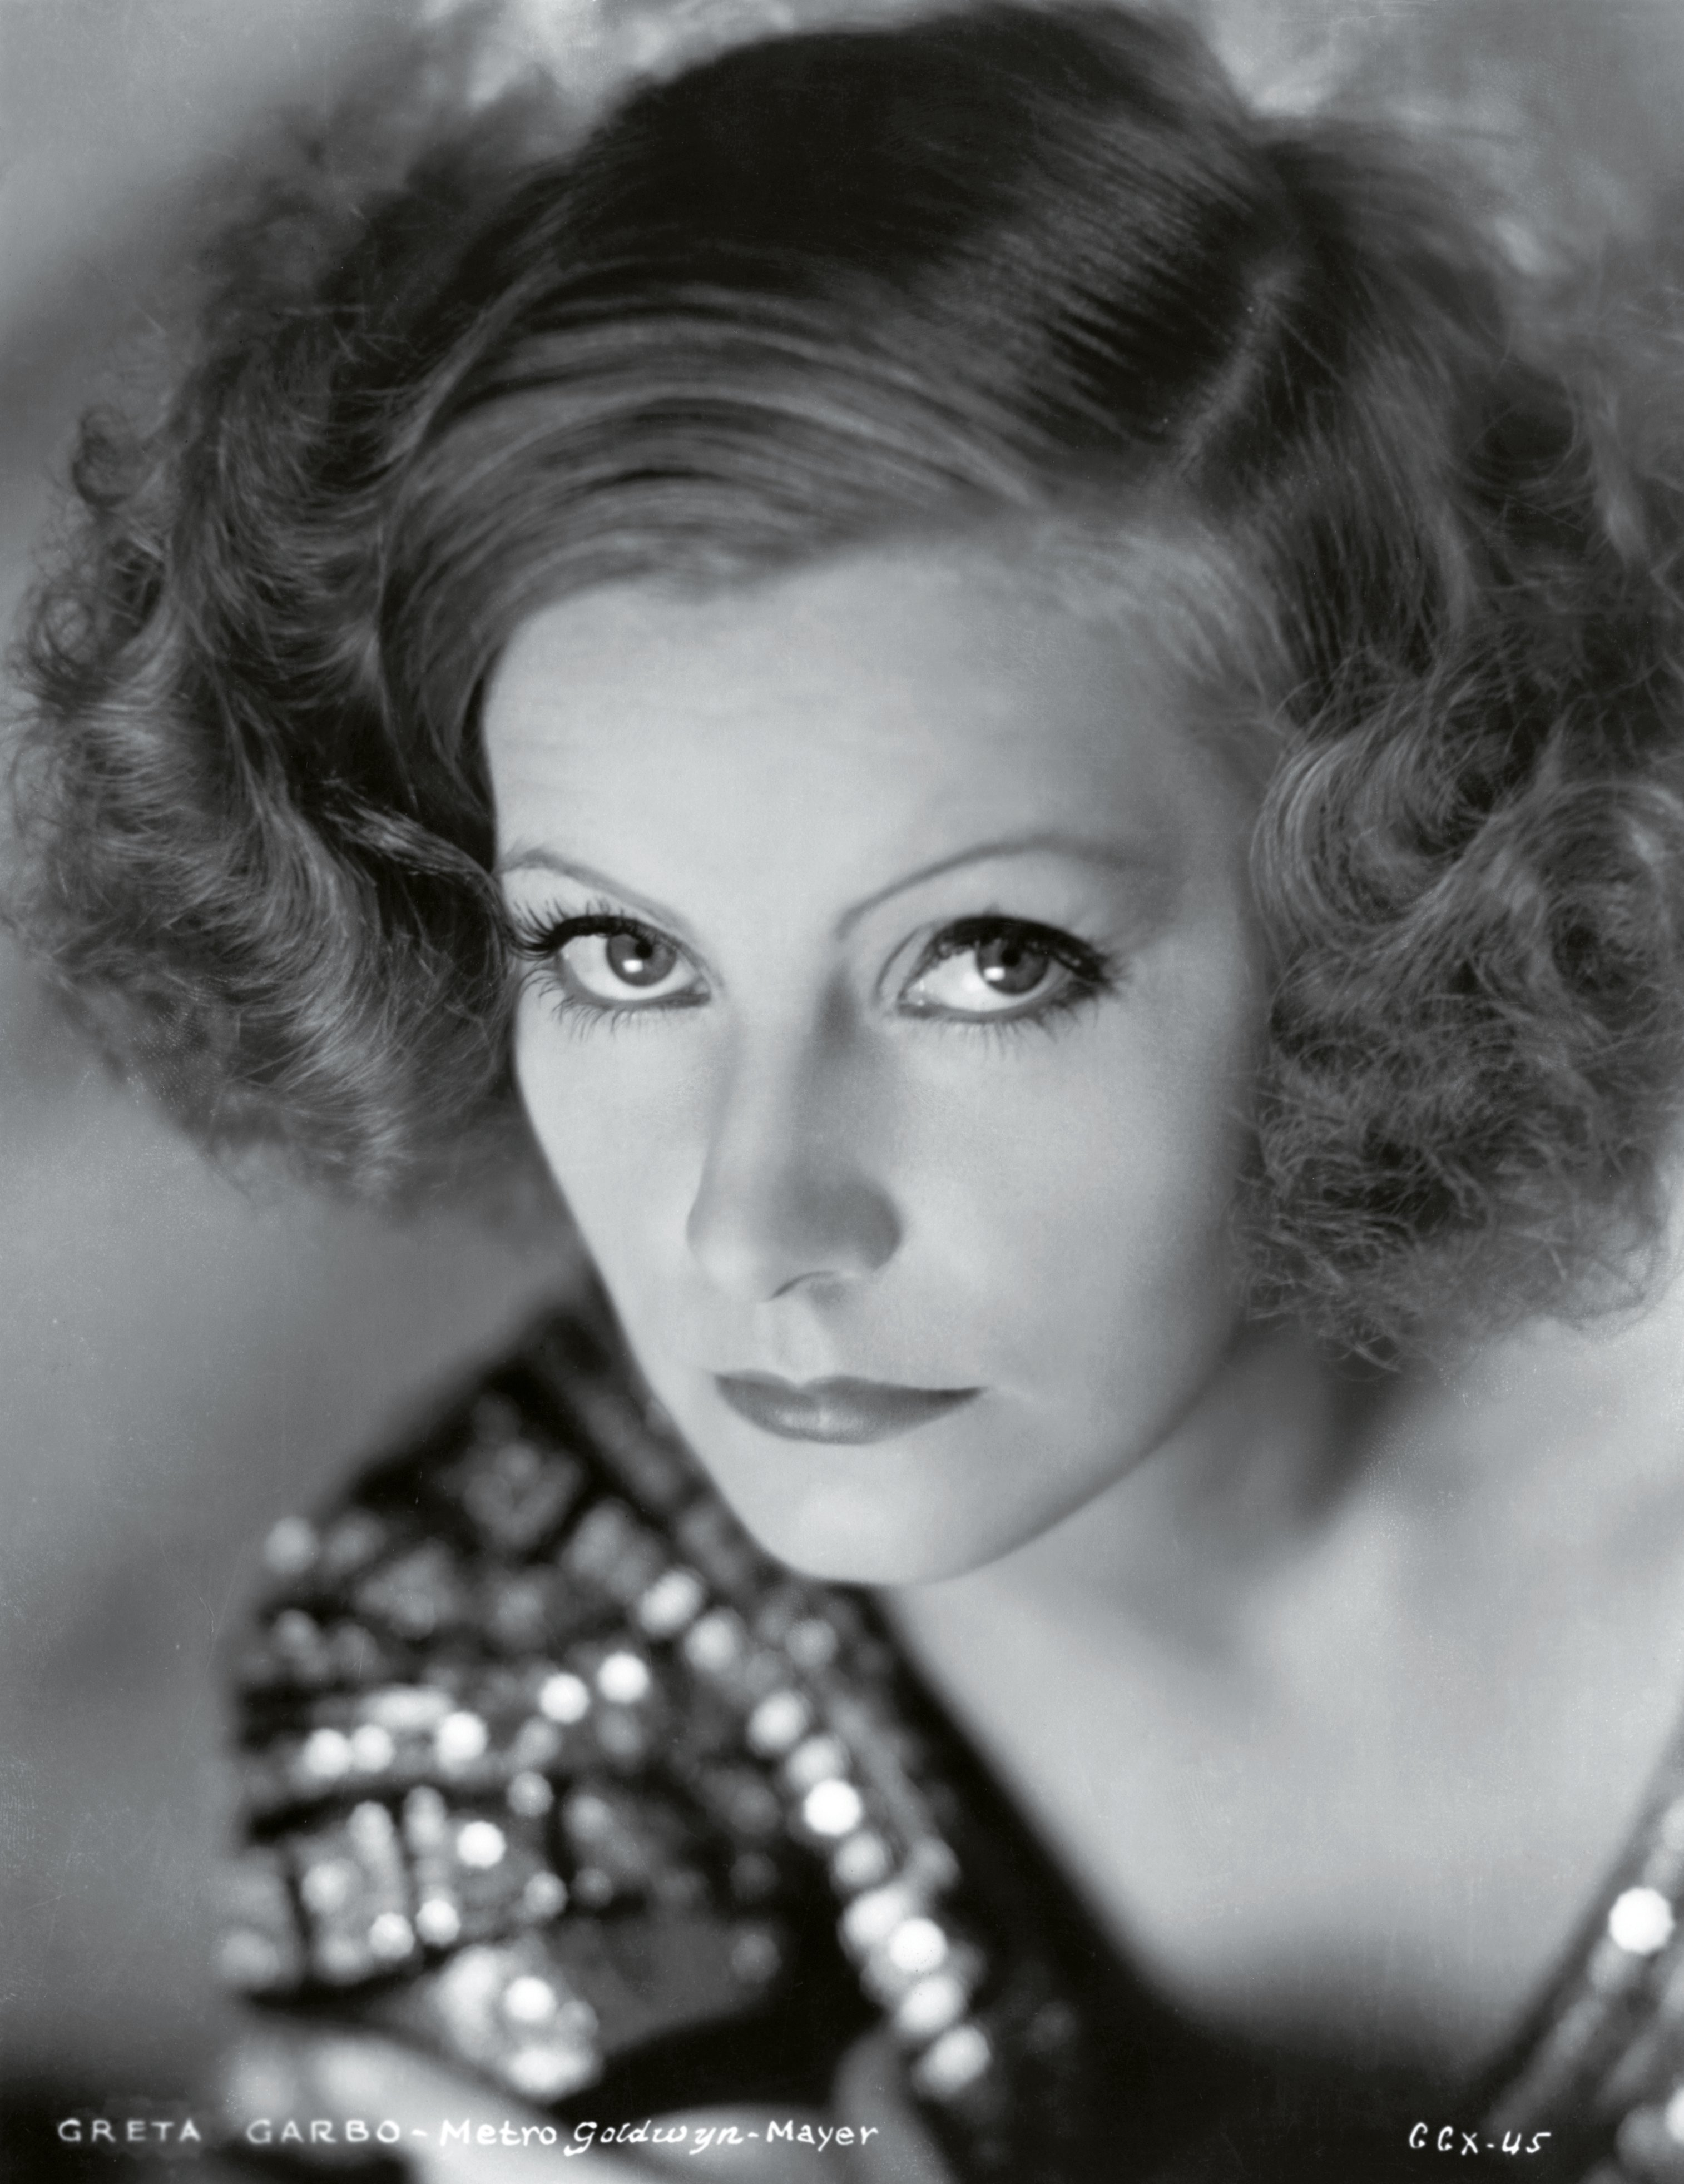 Greta Garbo's shoulder length curly style with a deep side part was another influential style  of the era.